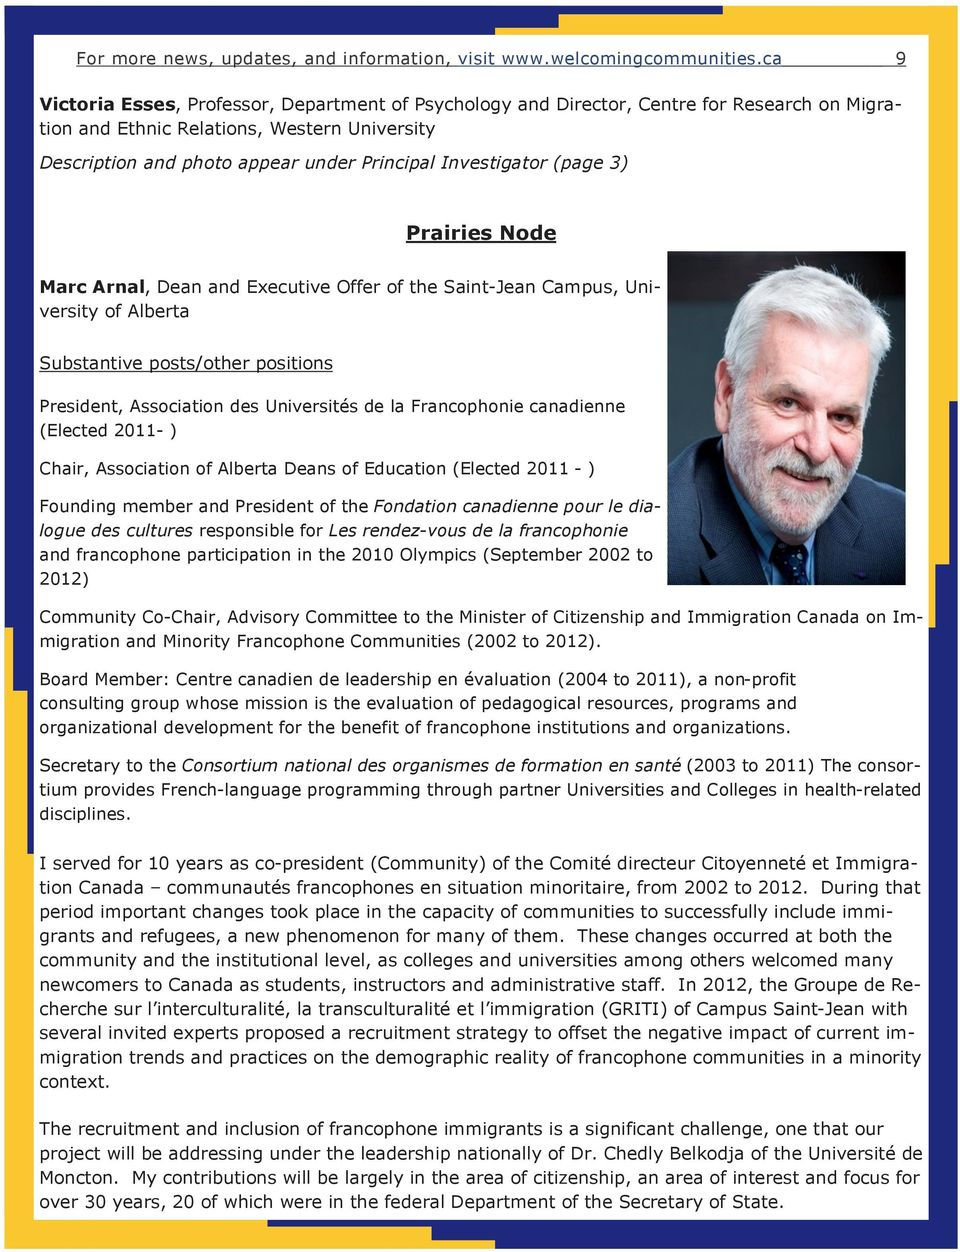 Investigator (page 3) Prairies Node Marc Arnal, Dean and Executive Offer of the Saint-Jean Campus, University of Alberta Substantive posts/other positions President, Association des Universités de la